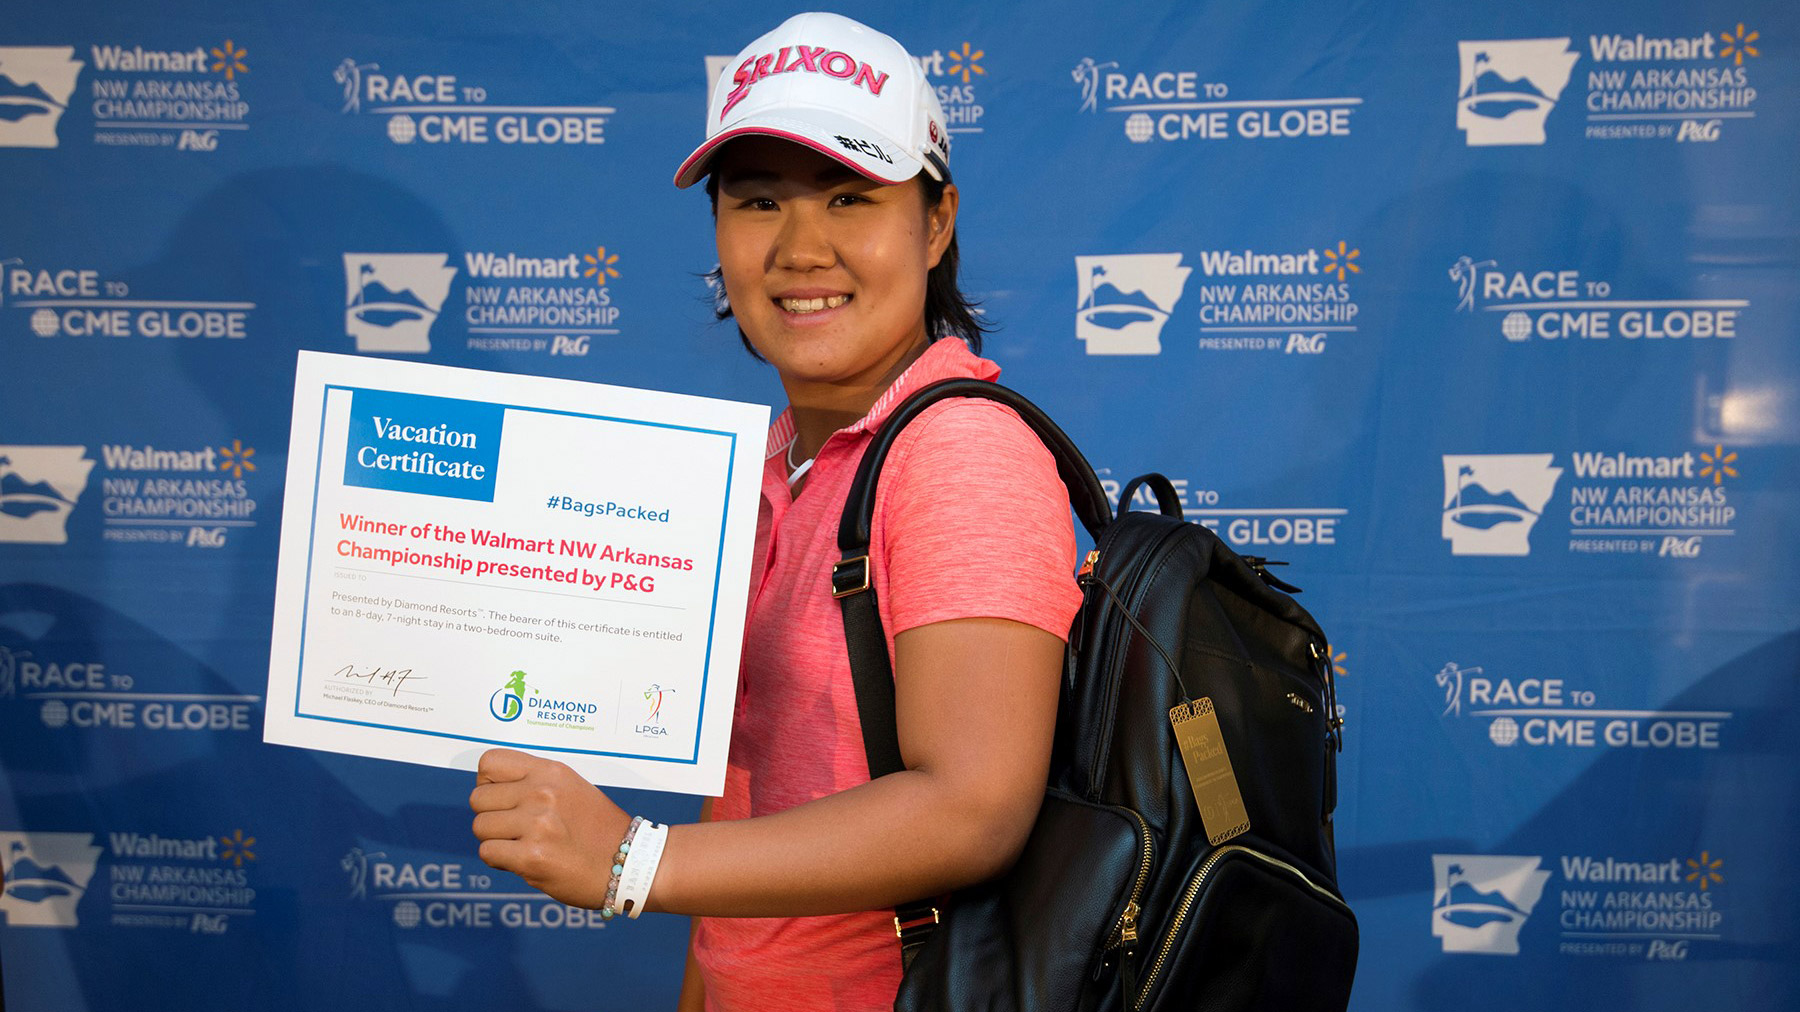 Nasa Hataoka has her #BagsPacked for the 2018 Diamond Resorts Tournament of Champions after her victory at the 2018 Walmart NW Arkansas Championship presented by P&G